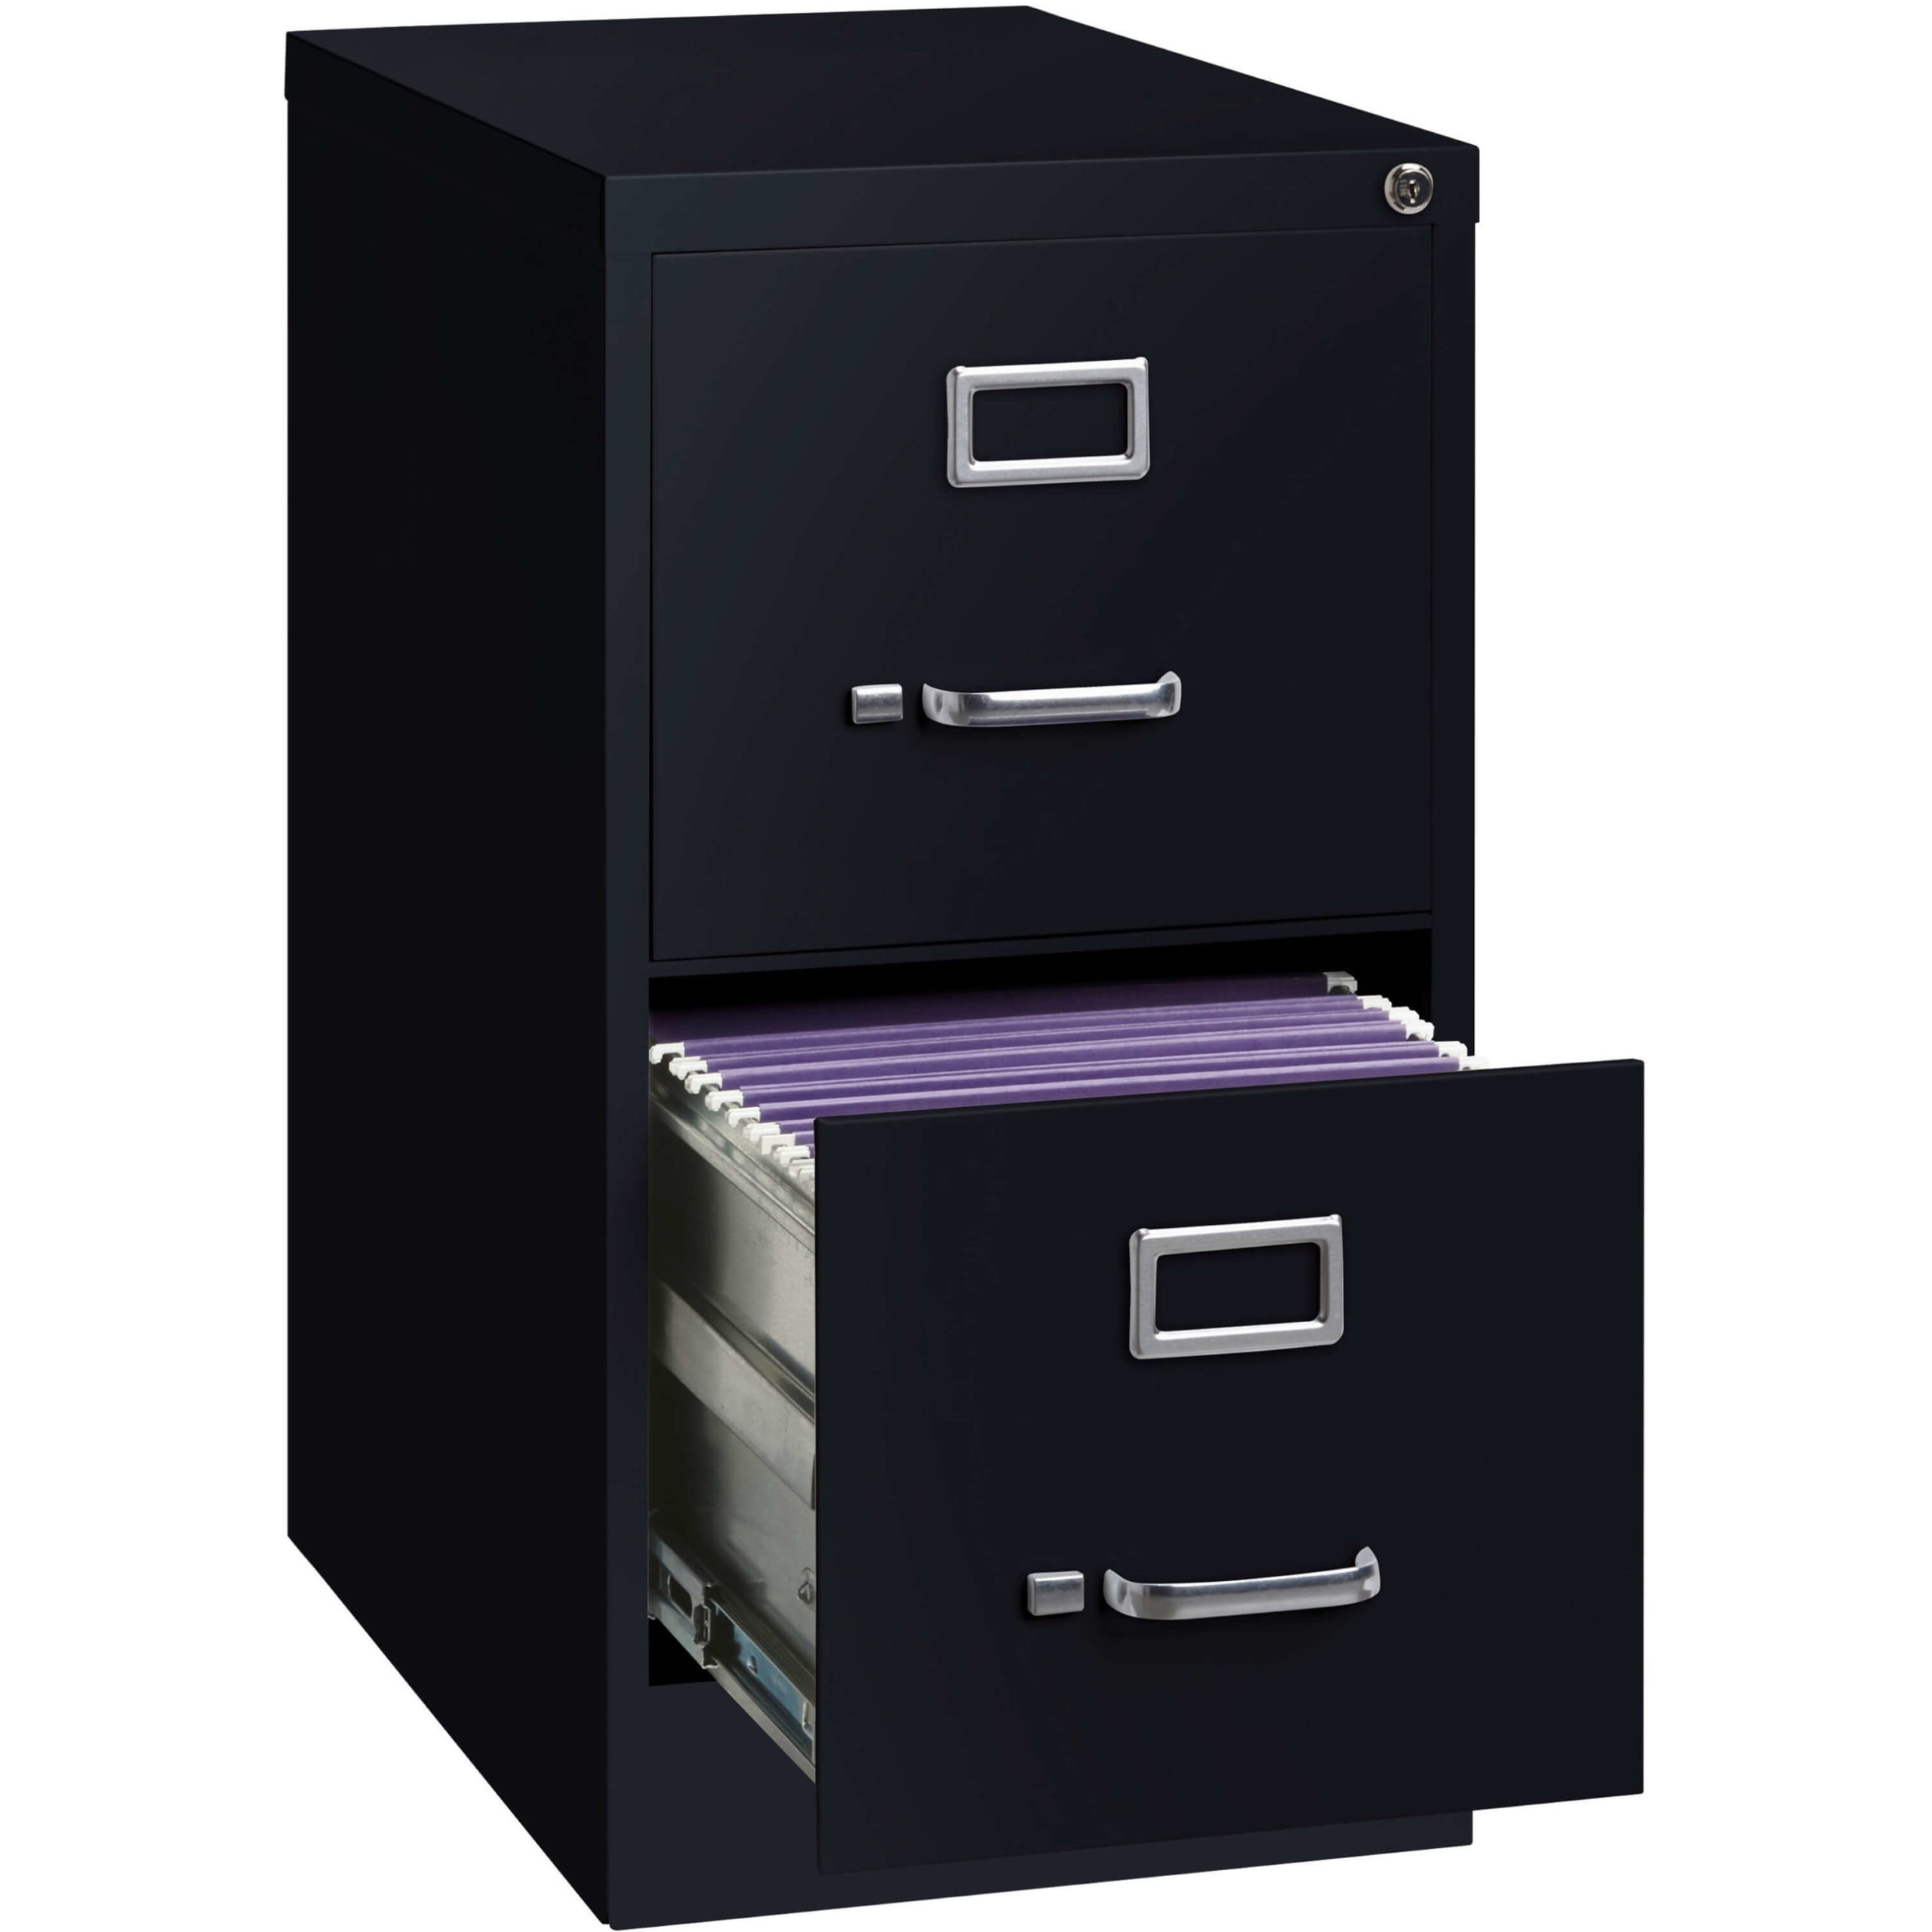 Lorell vertical Filing Cabinet review